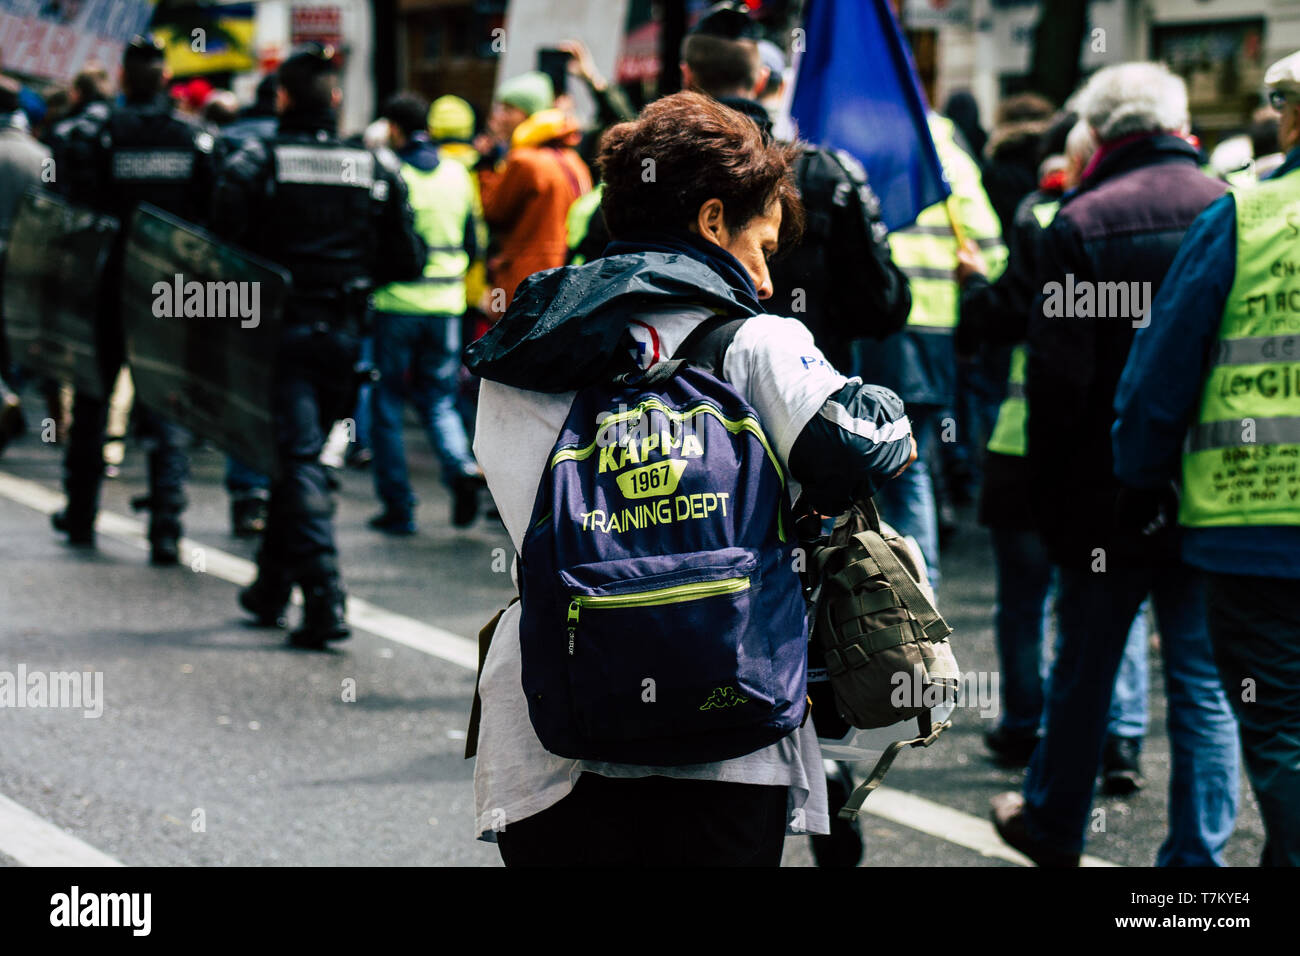 Paris France May 04, 2019 View of French street medic walking in the street during protests of the Yellow jackets - Stock Image